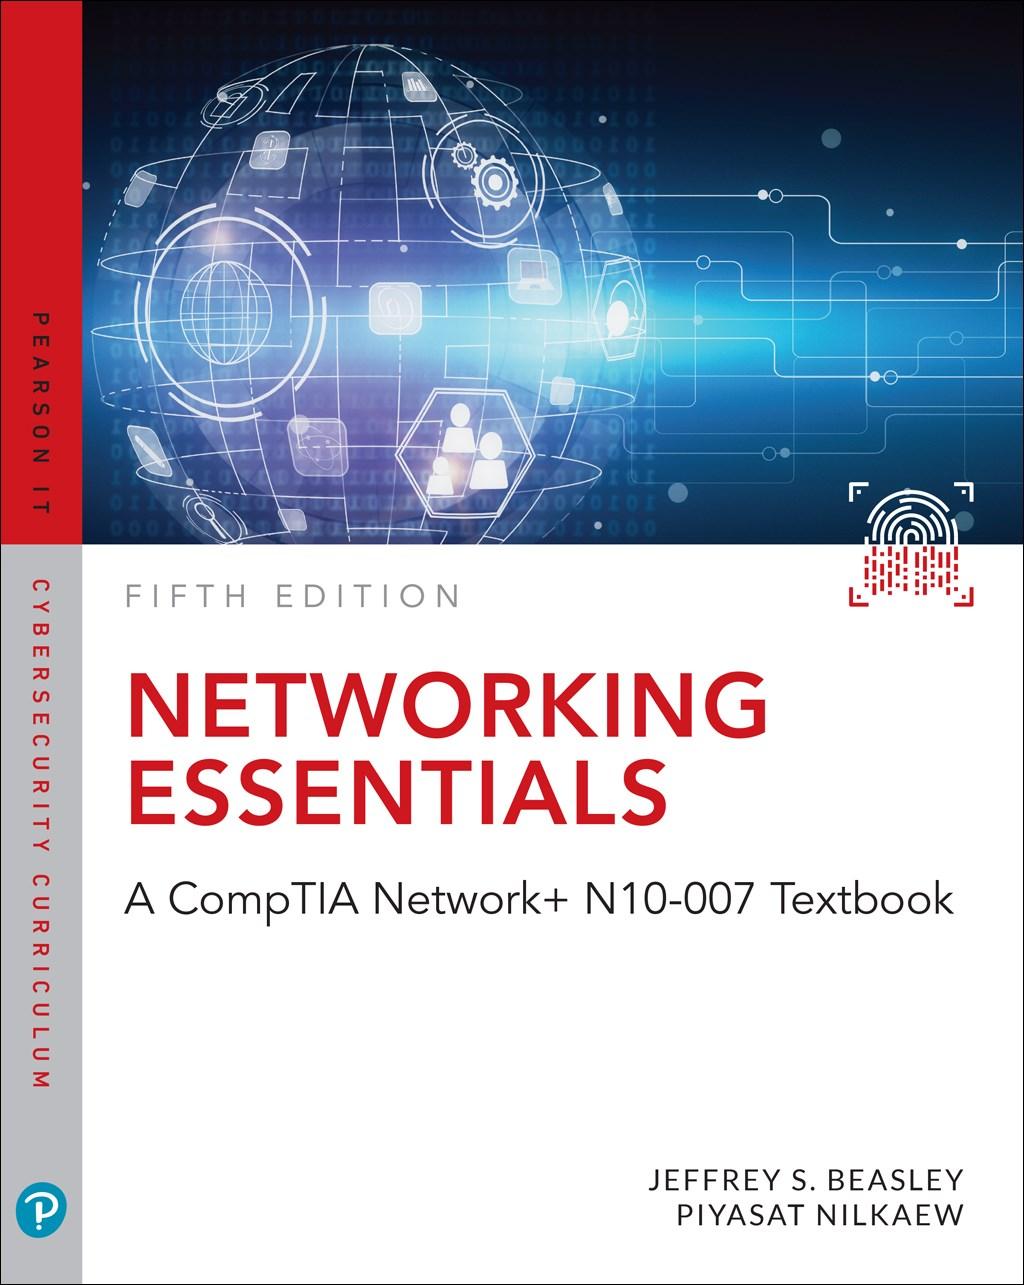 Networking Essentials: A CompTIA Network+ N10-007 Textbook, 5th Edition